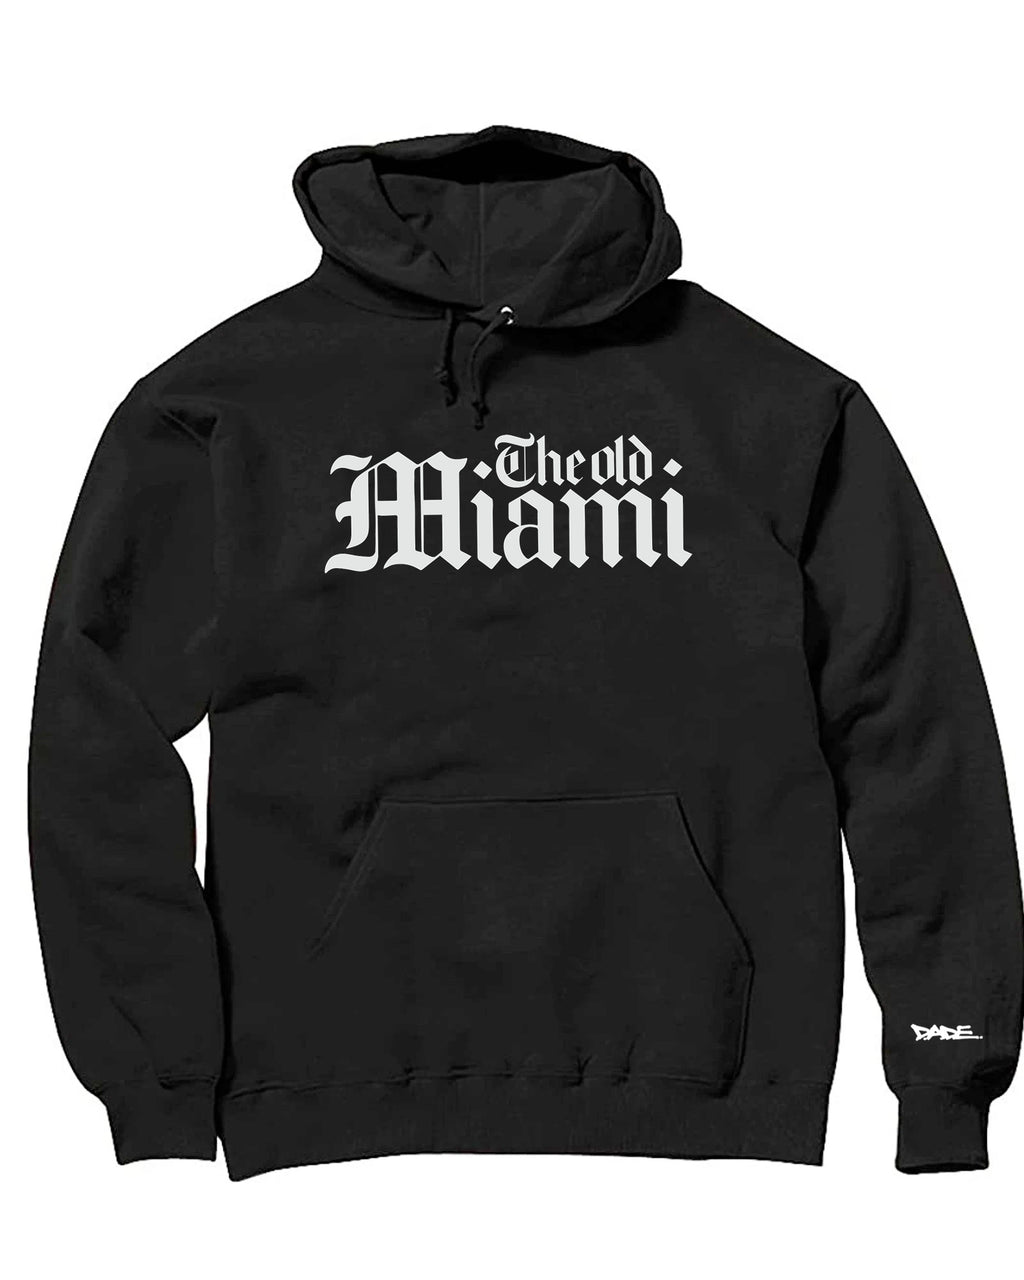 The Old Miami Hoodie